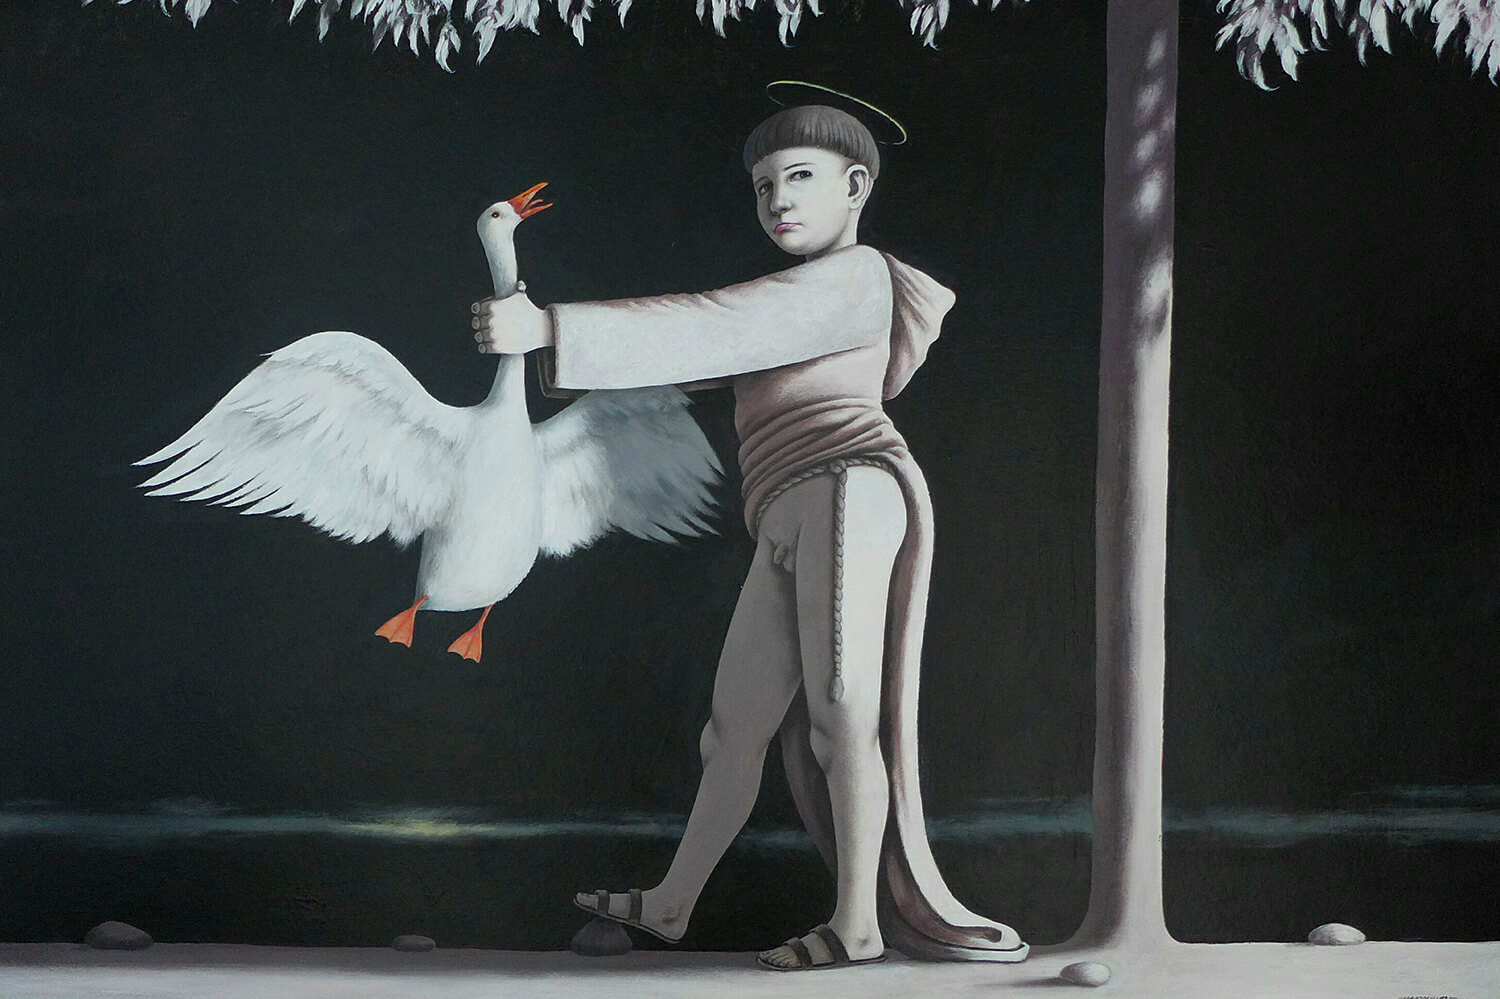 Massimiliano Esposito - Paintings the south west collective of photography man holding swan by the neck